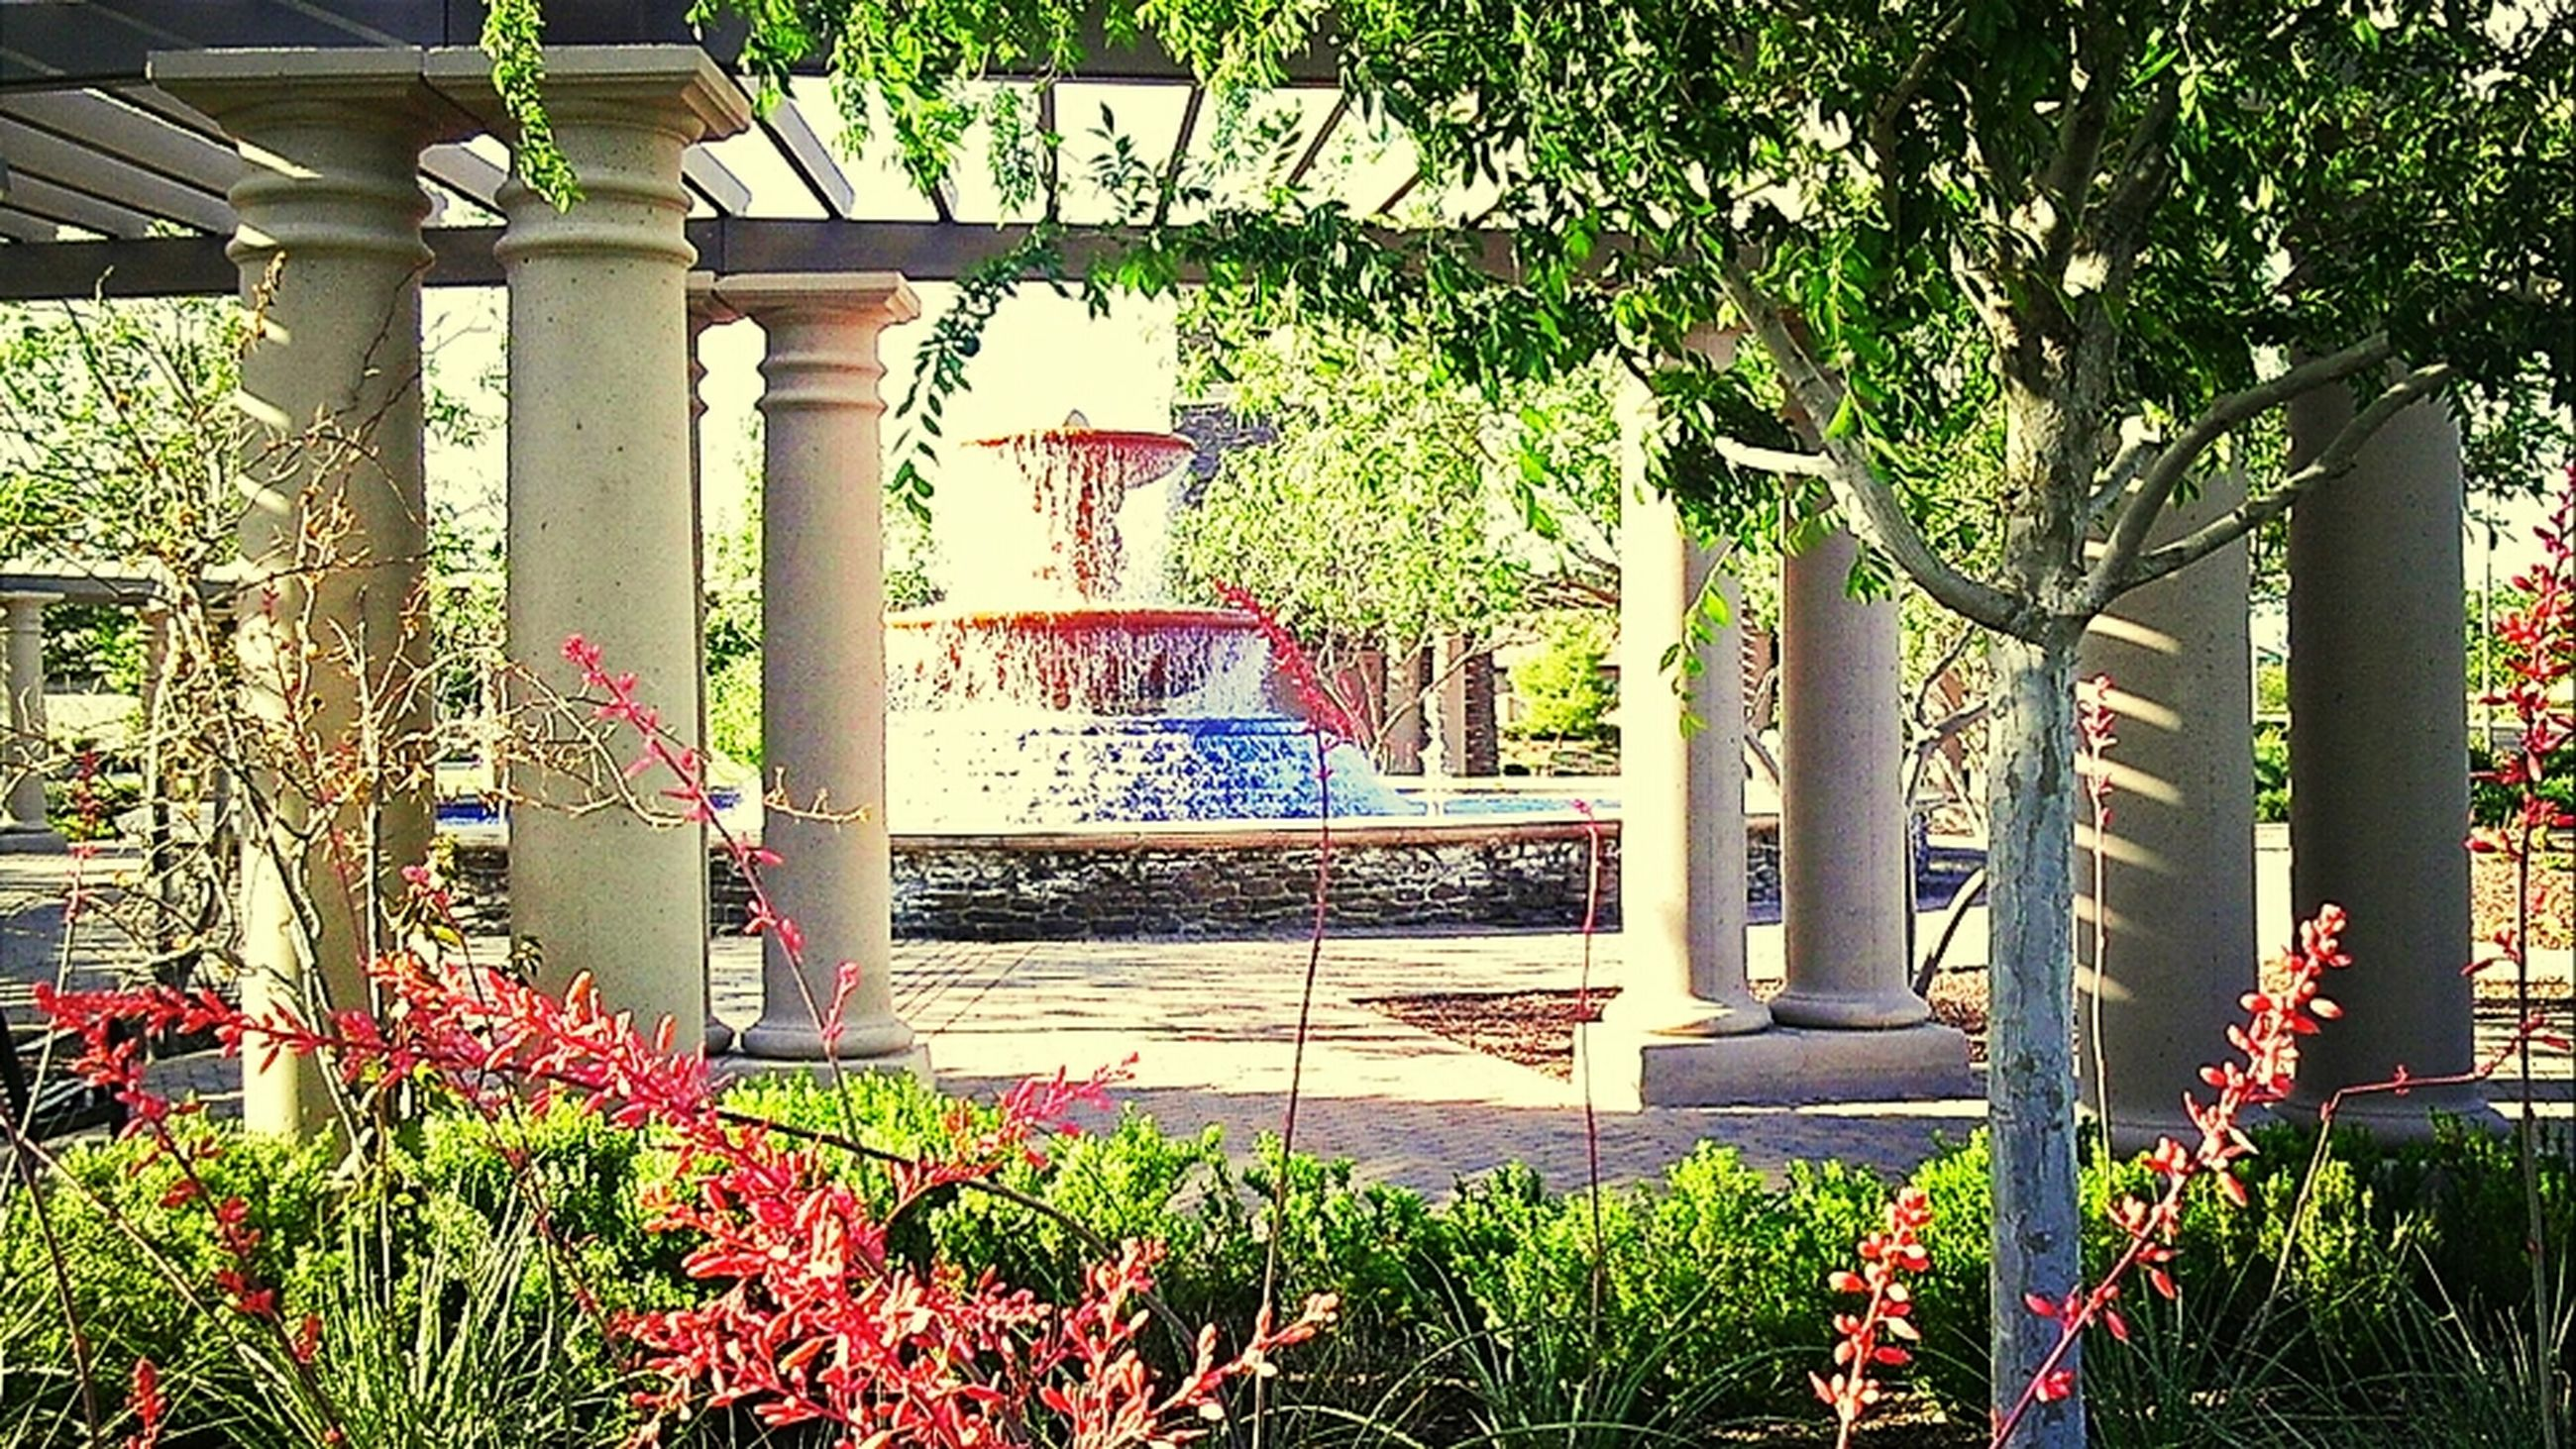 plant, flower, built structure, growth, tree, architecture, building exterior, potted plant, red, green color, formal garden, nature, day, park - man made space, outdoors, house, entrance, leaf, no people, architectural column